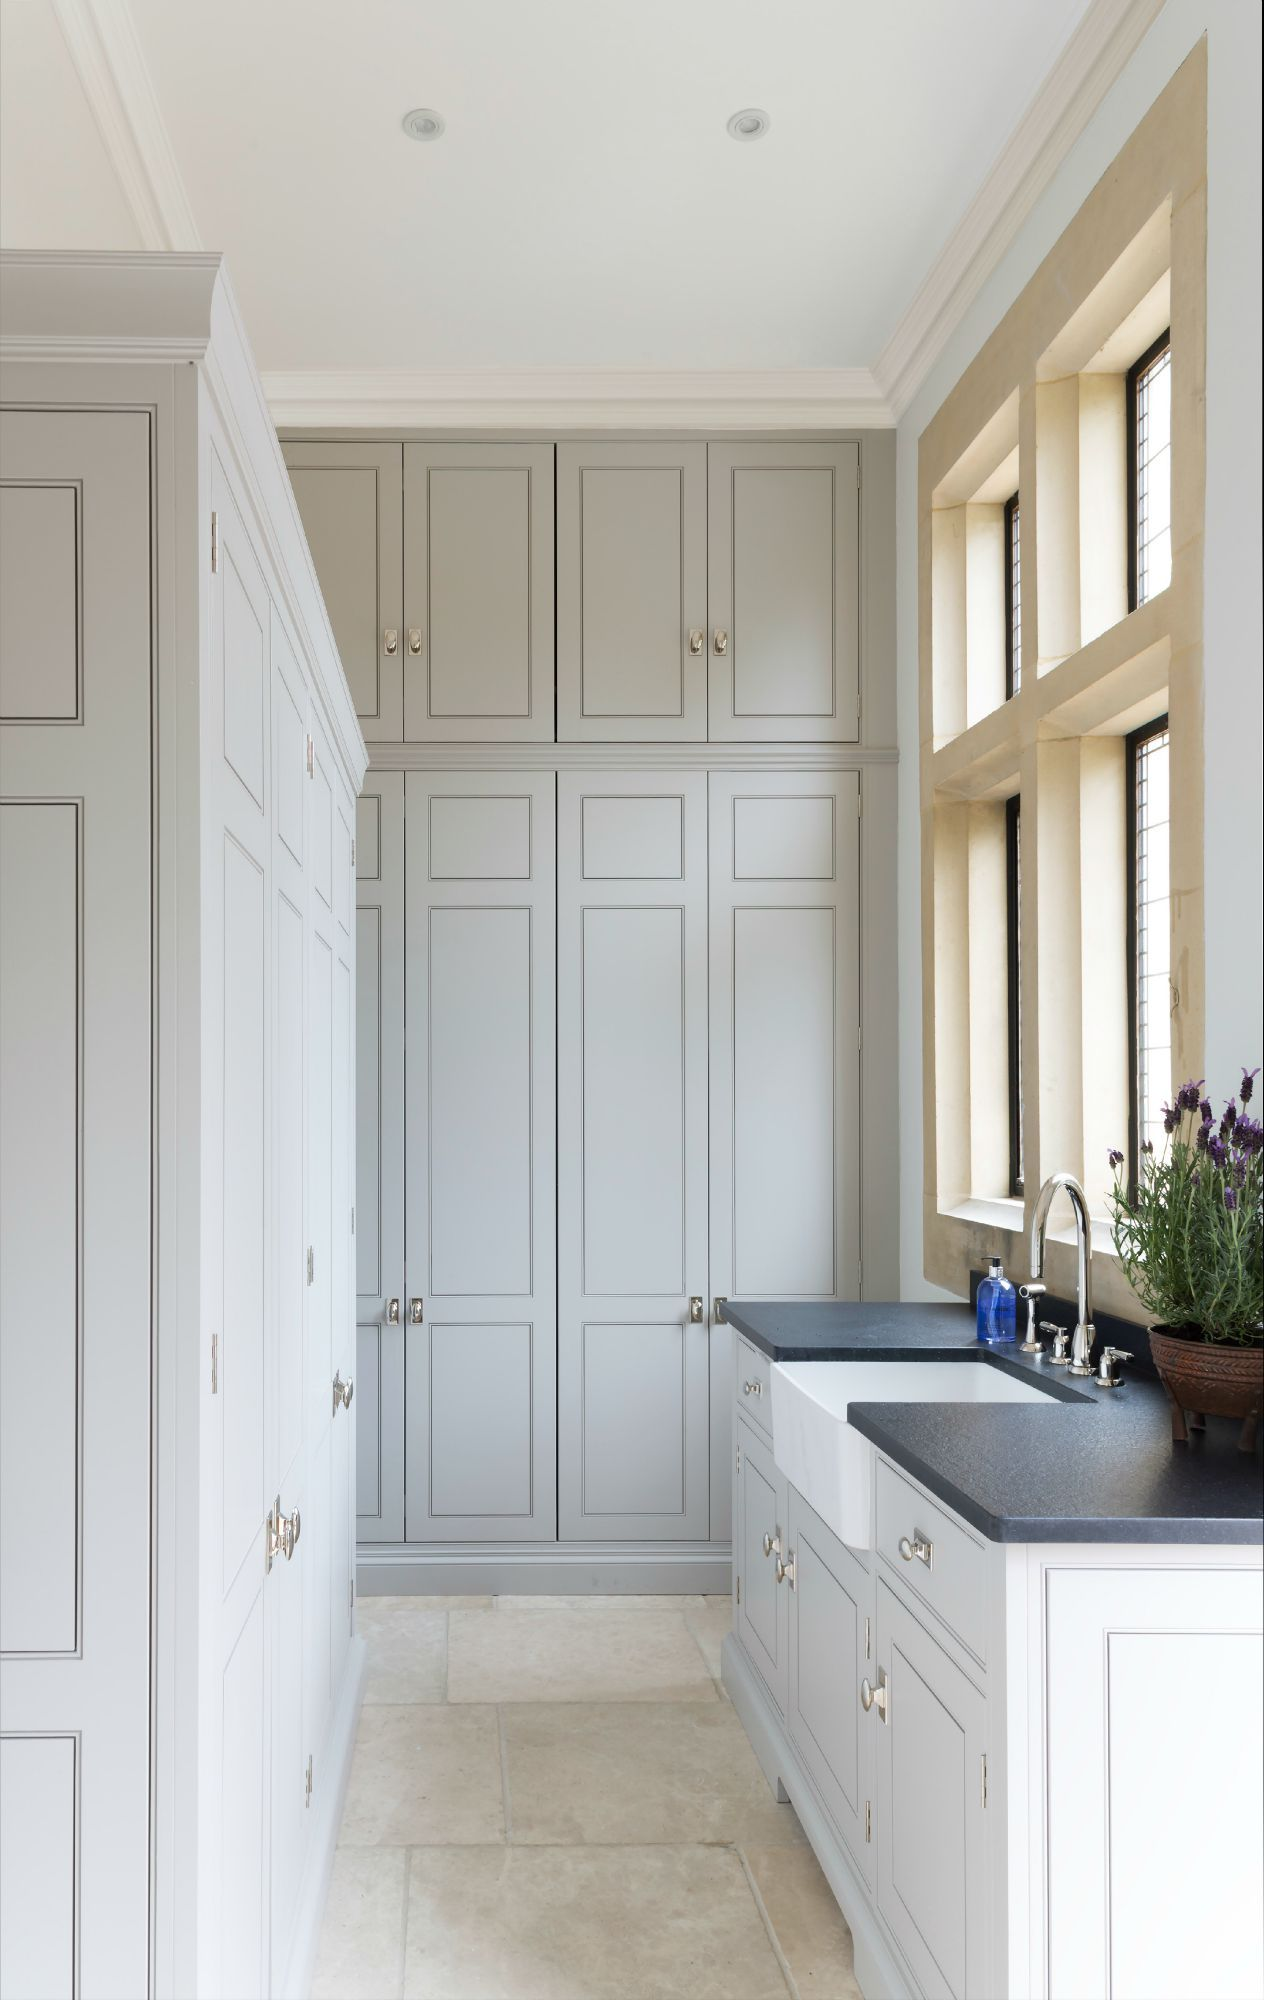 Utility Room - Luxury Bespoke Kitchen Project - Ascot